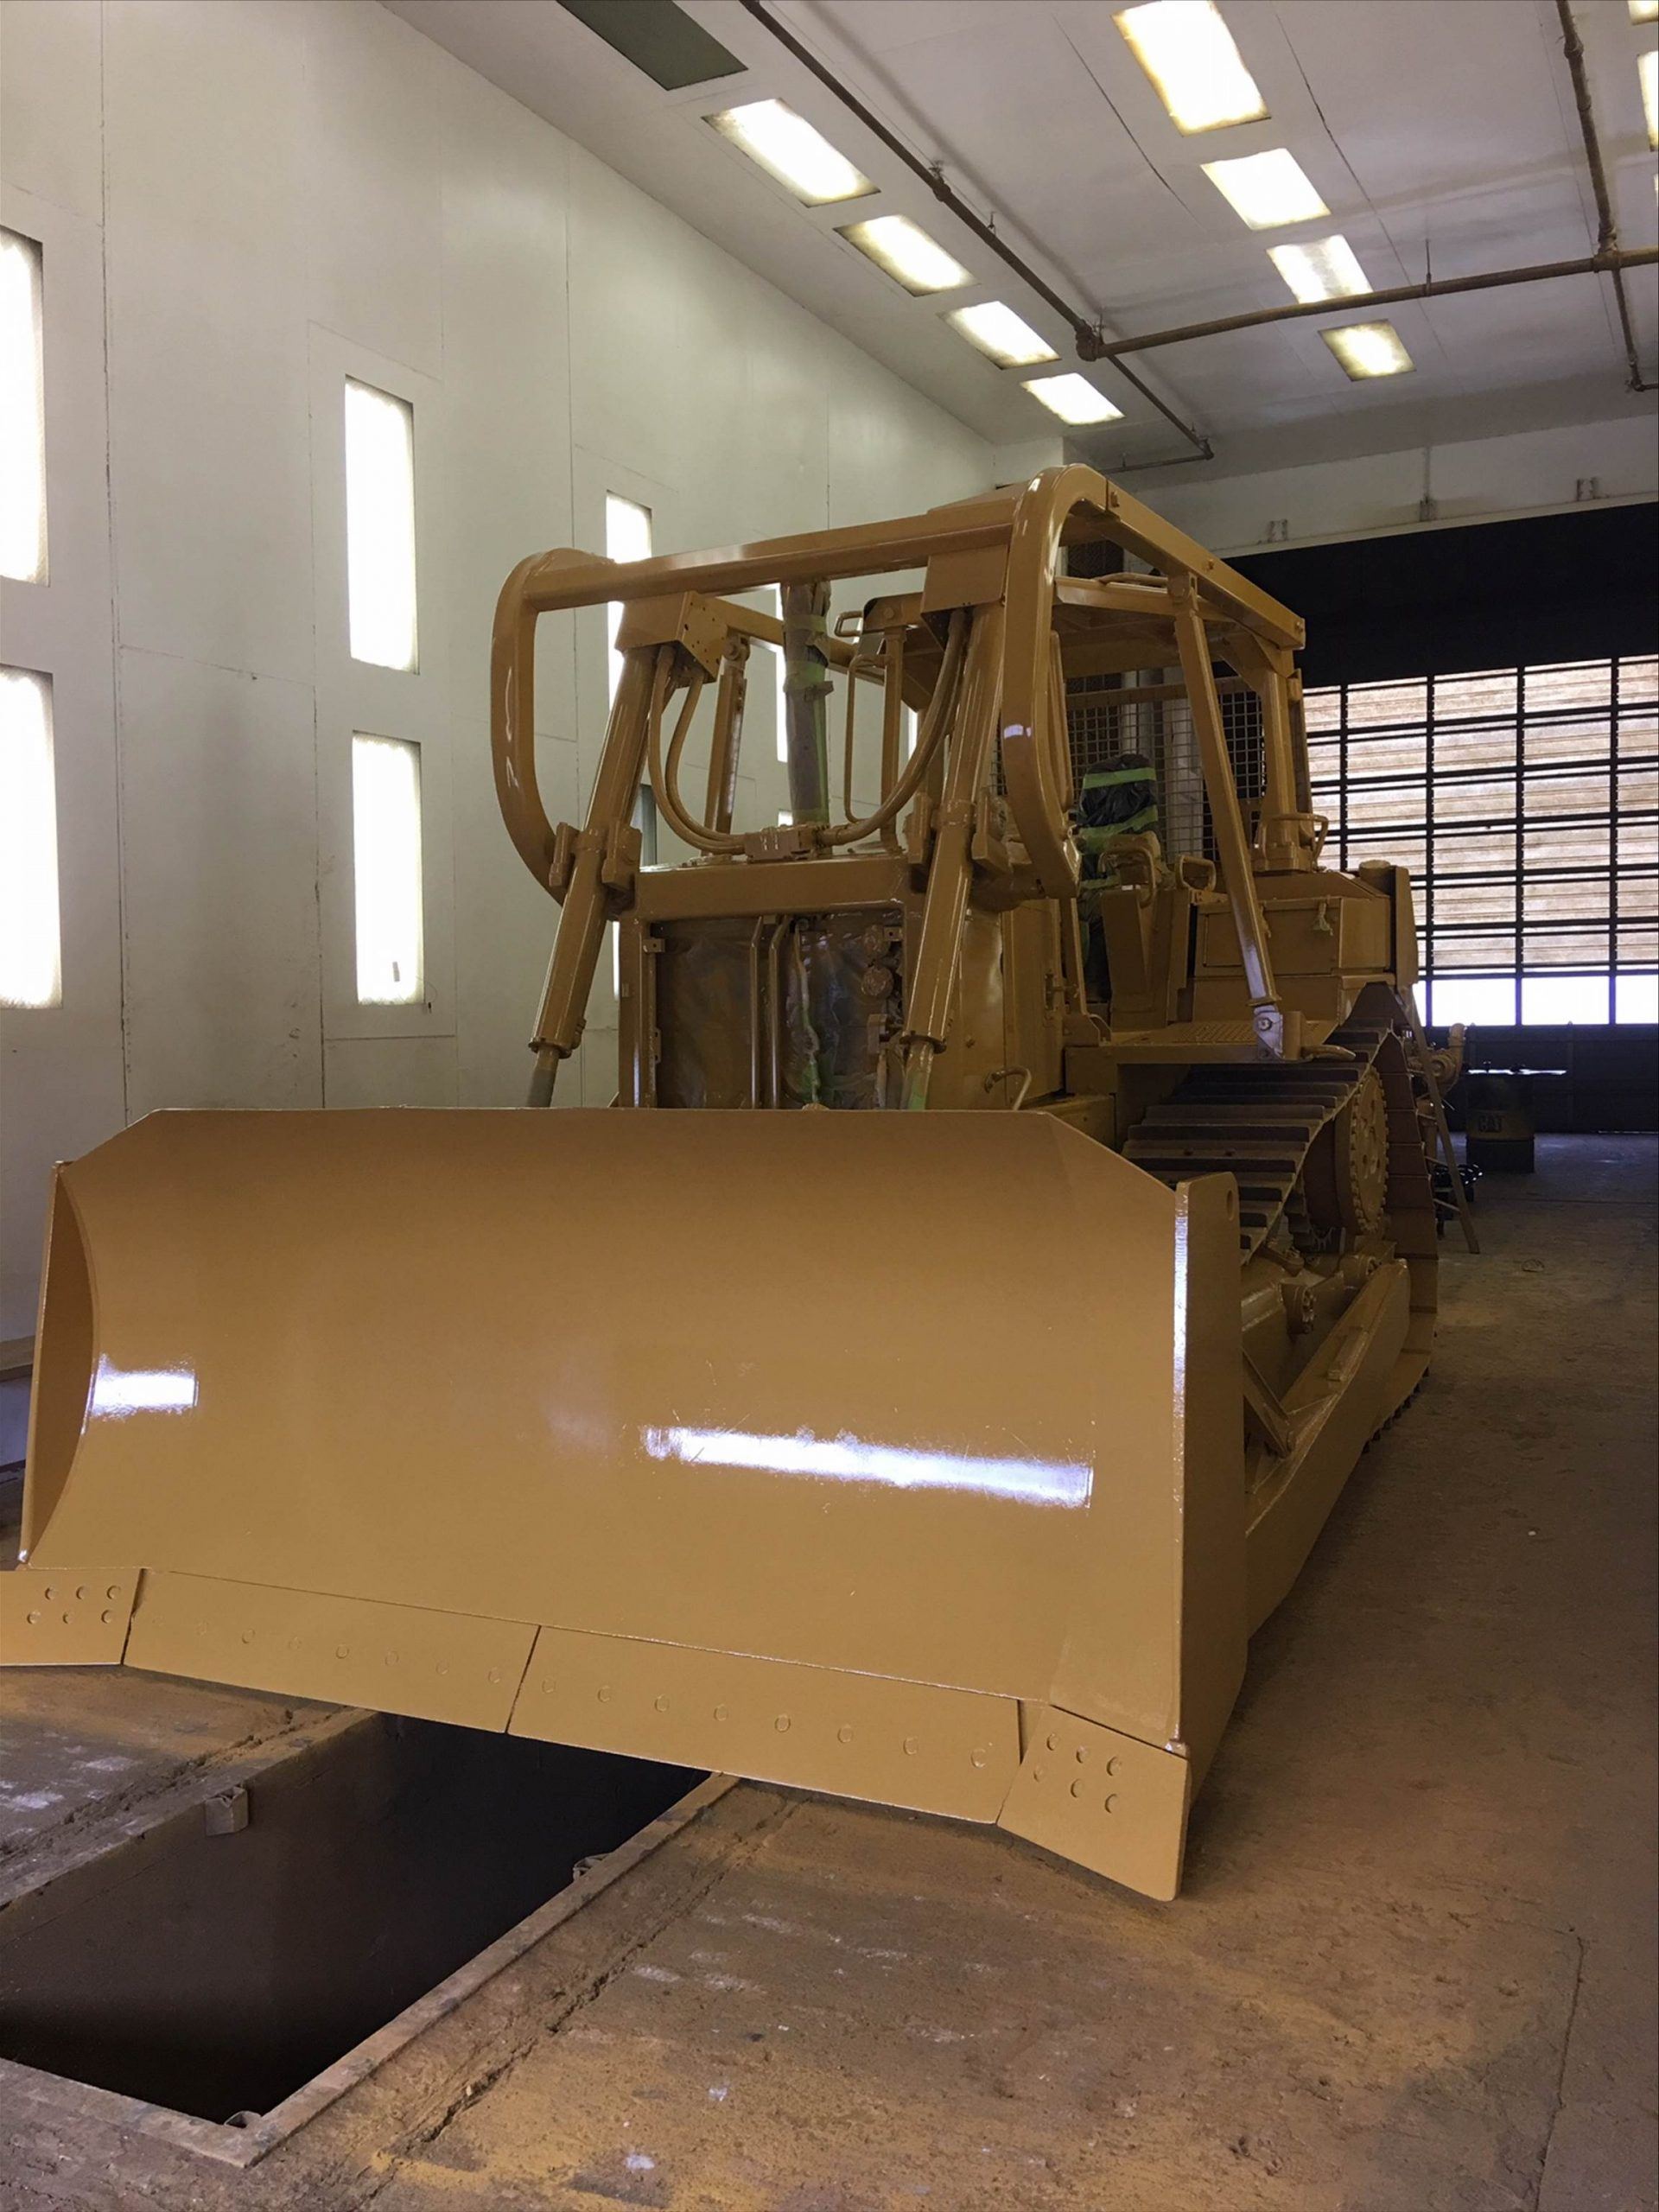 Dozer painted yellow